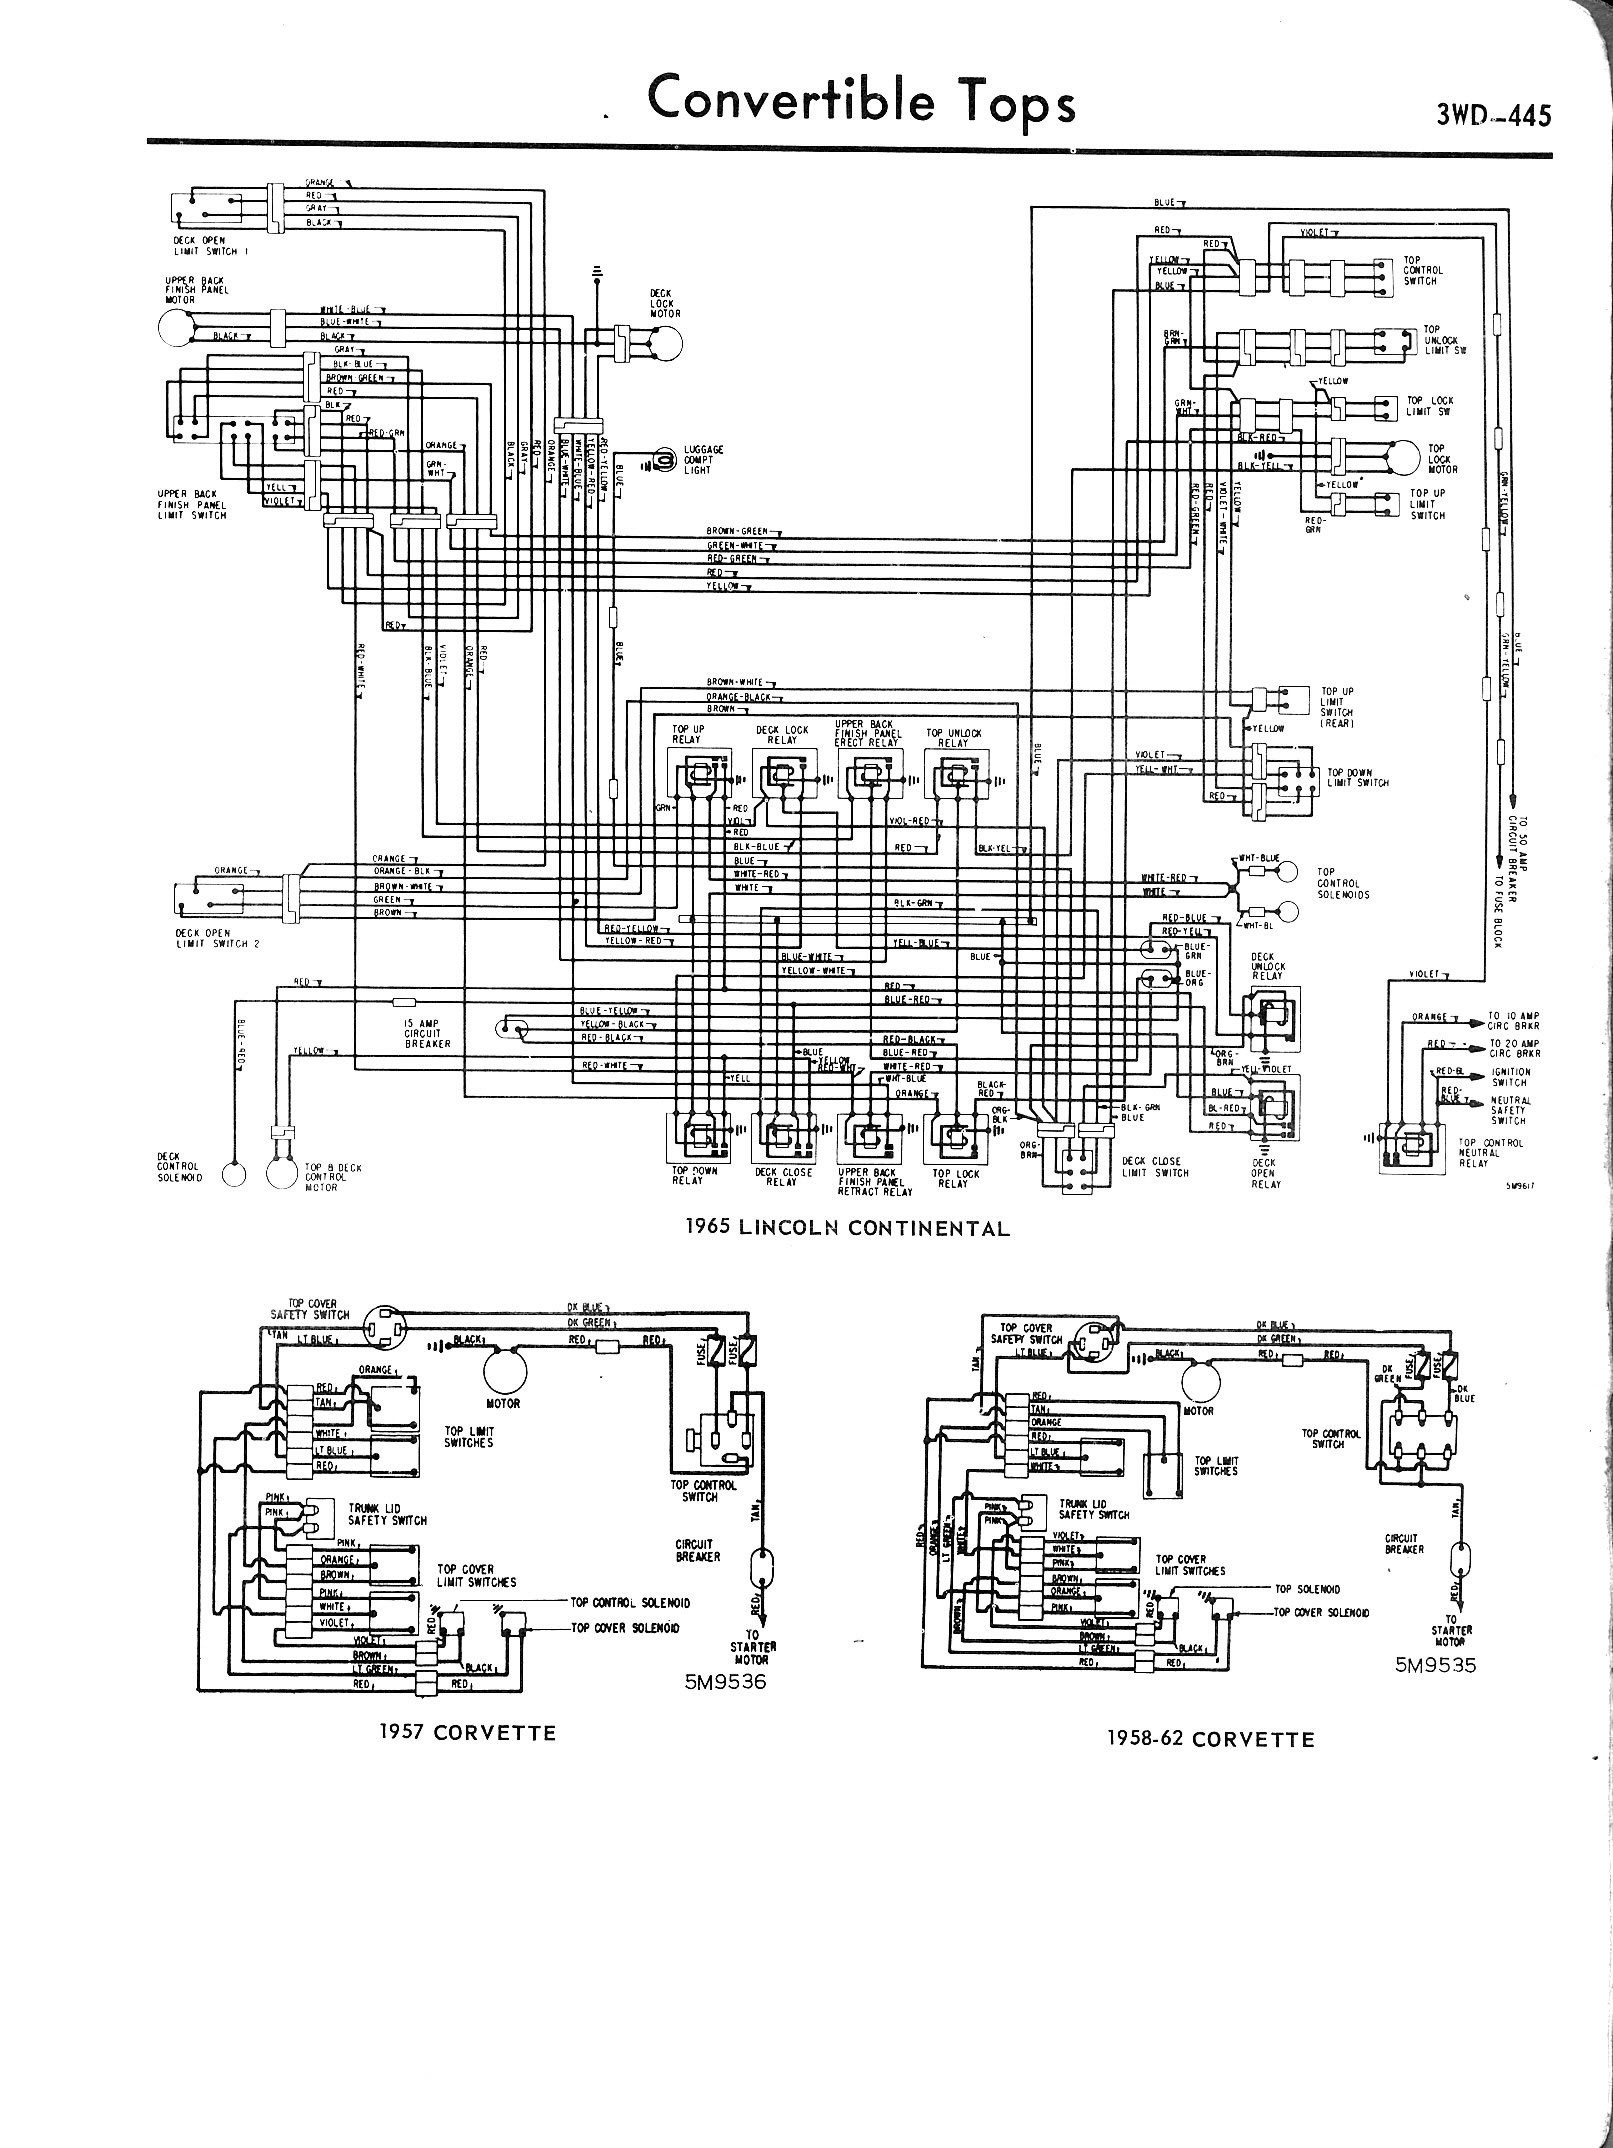 3WD 445_jpg 57 convertible wiring harness conv top trifive com, 1955 chevy 1957 chevrolet wiring diagram at gsmx.co